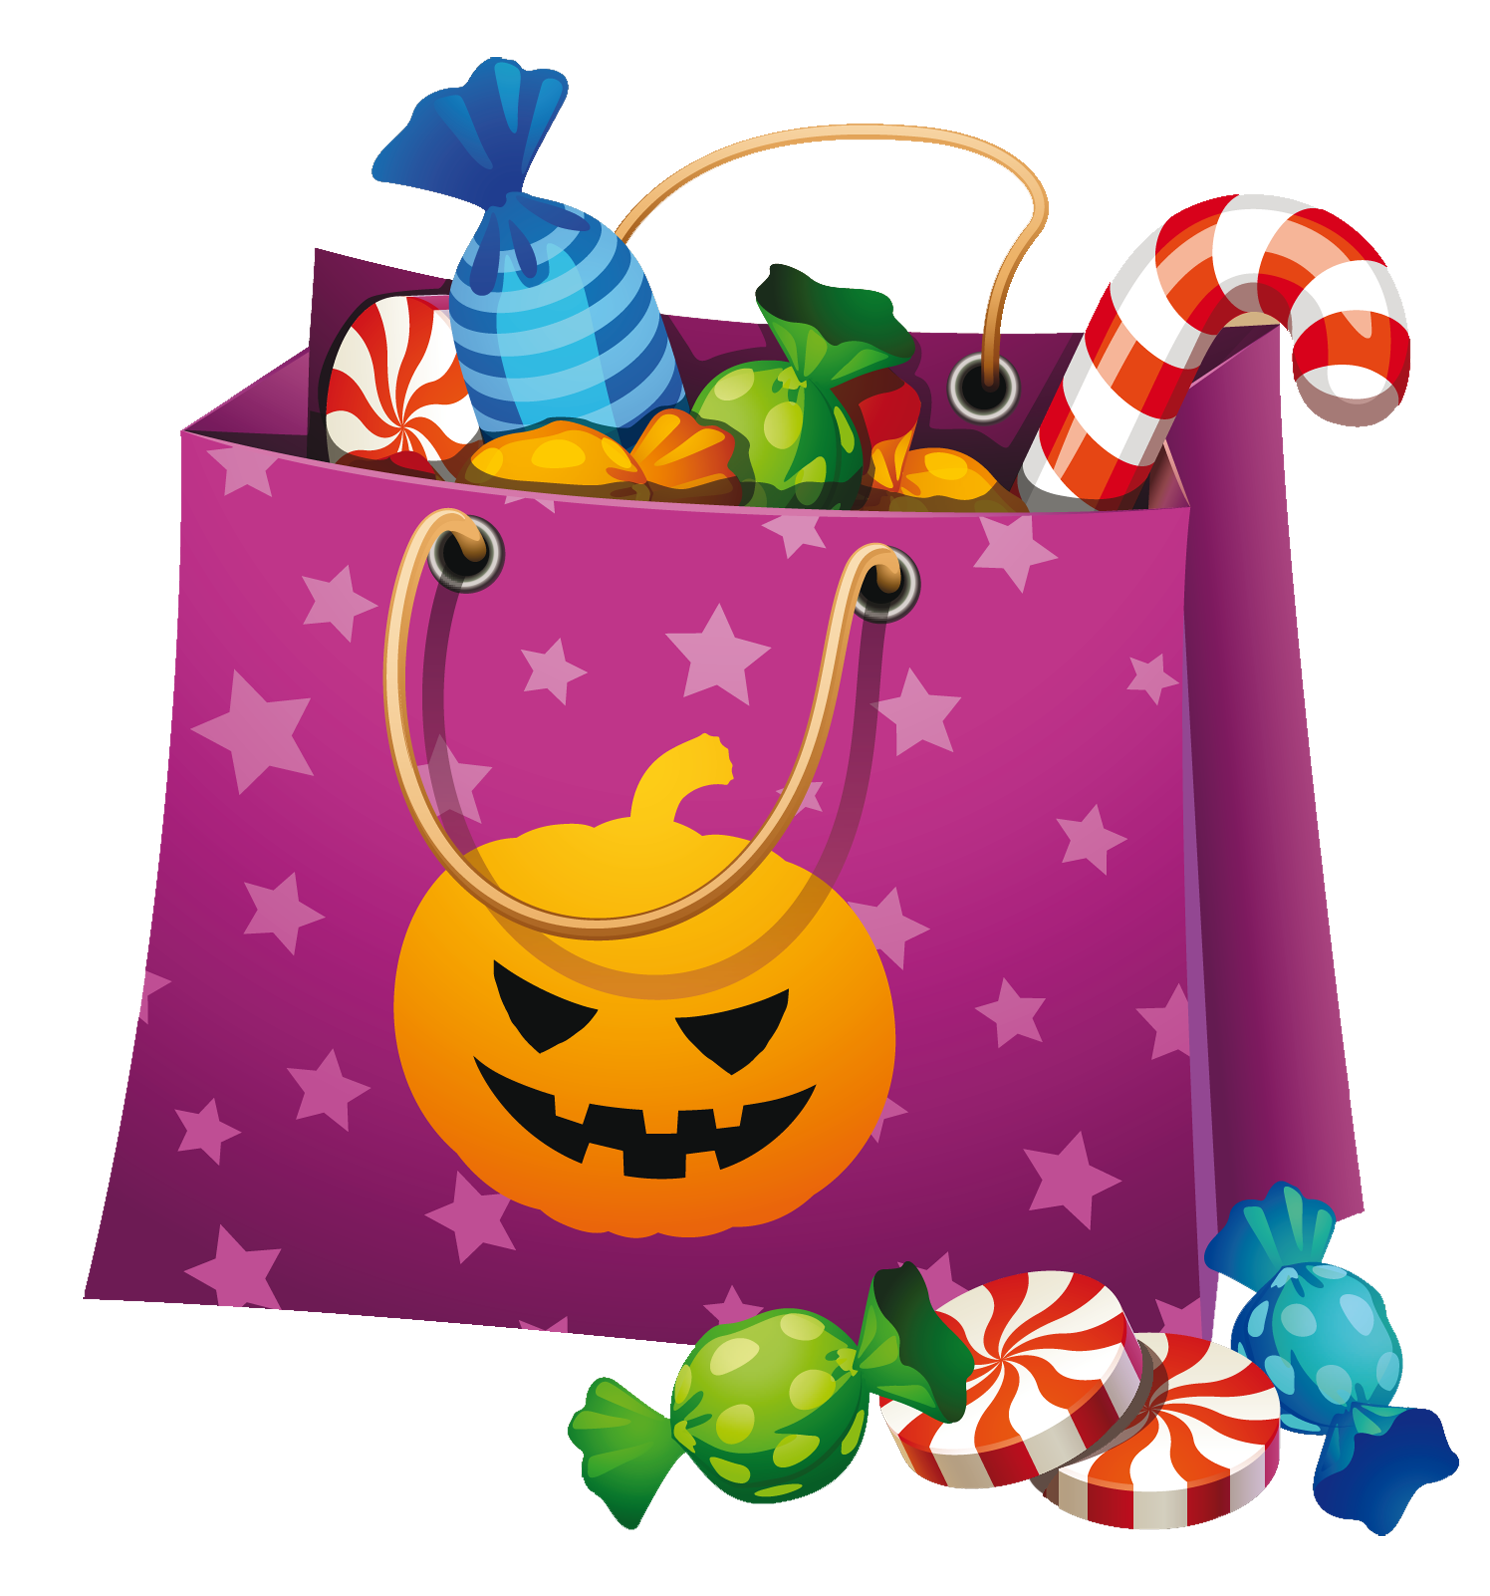 Halloween Png Candy Bag Clipart-Halloween Png Candy Bag Clipart-14